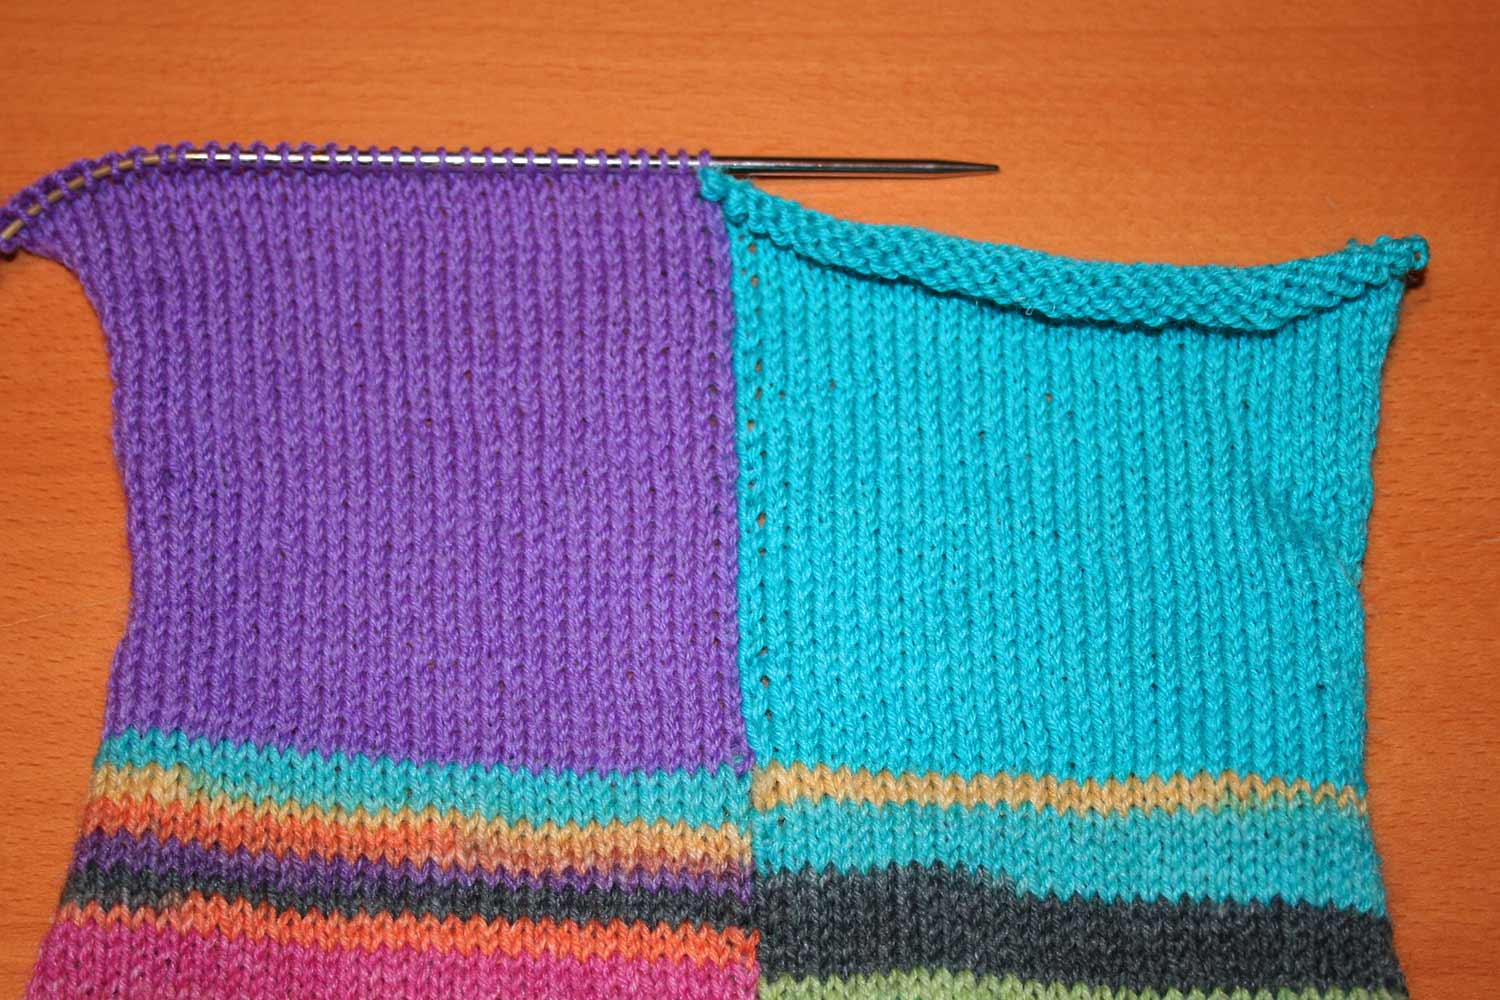 Intarsia project with the purple half on the needle and the turquoise half with needle removed.